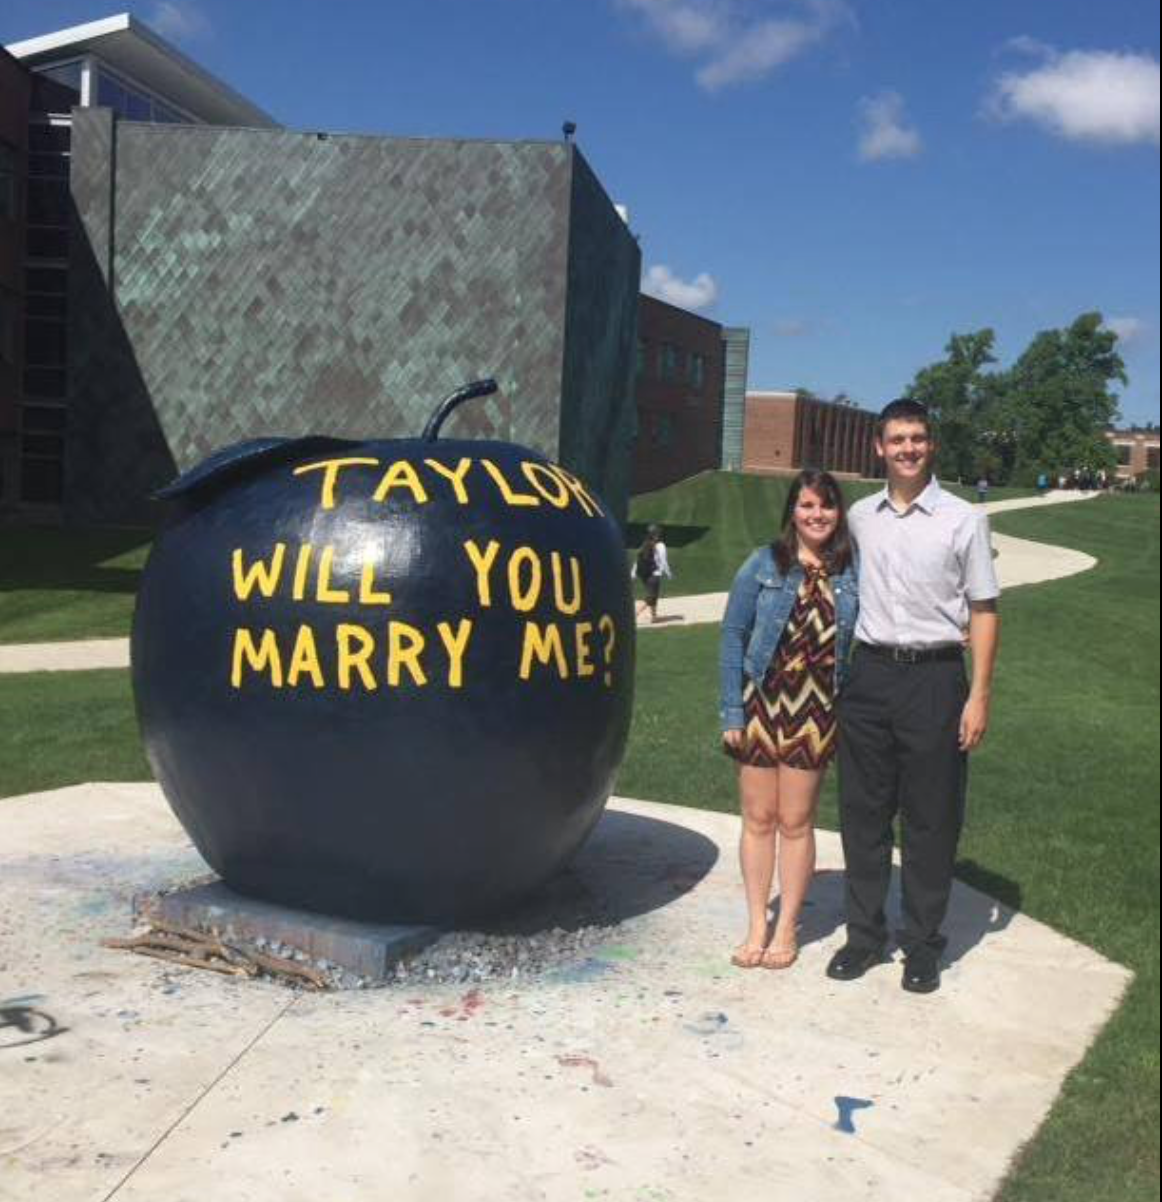 """Colton Kennedy, a recent Penn State Altoona graduate, proposed to Taylor Eastlick, a senior Speech Pathology major at Clarion University. He did it in the most creative way possible - by painting the apple! She of course accepted! The best part is that it was BOTH of their birthdays! This will surely be a celebration neither of them will forget!"" Photo courtesy Clarion University."